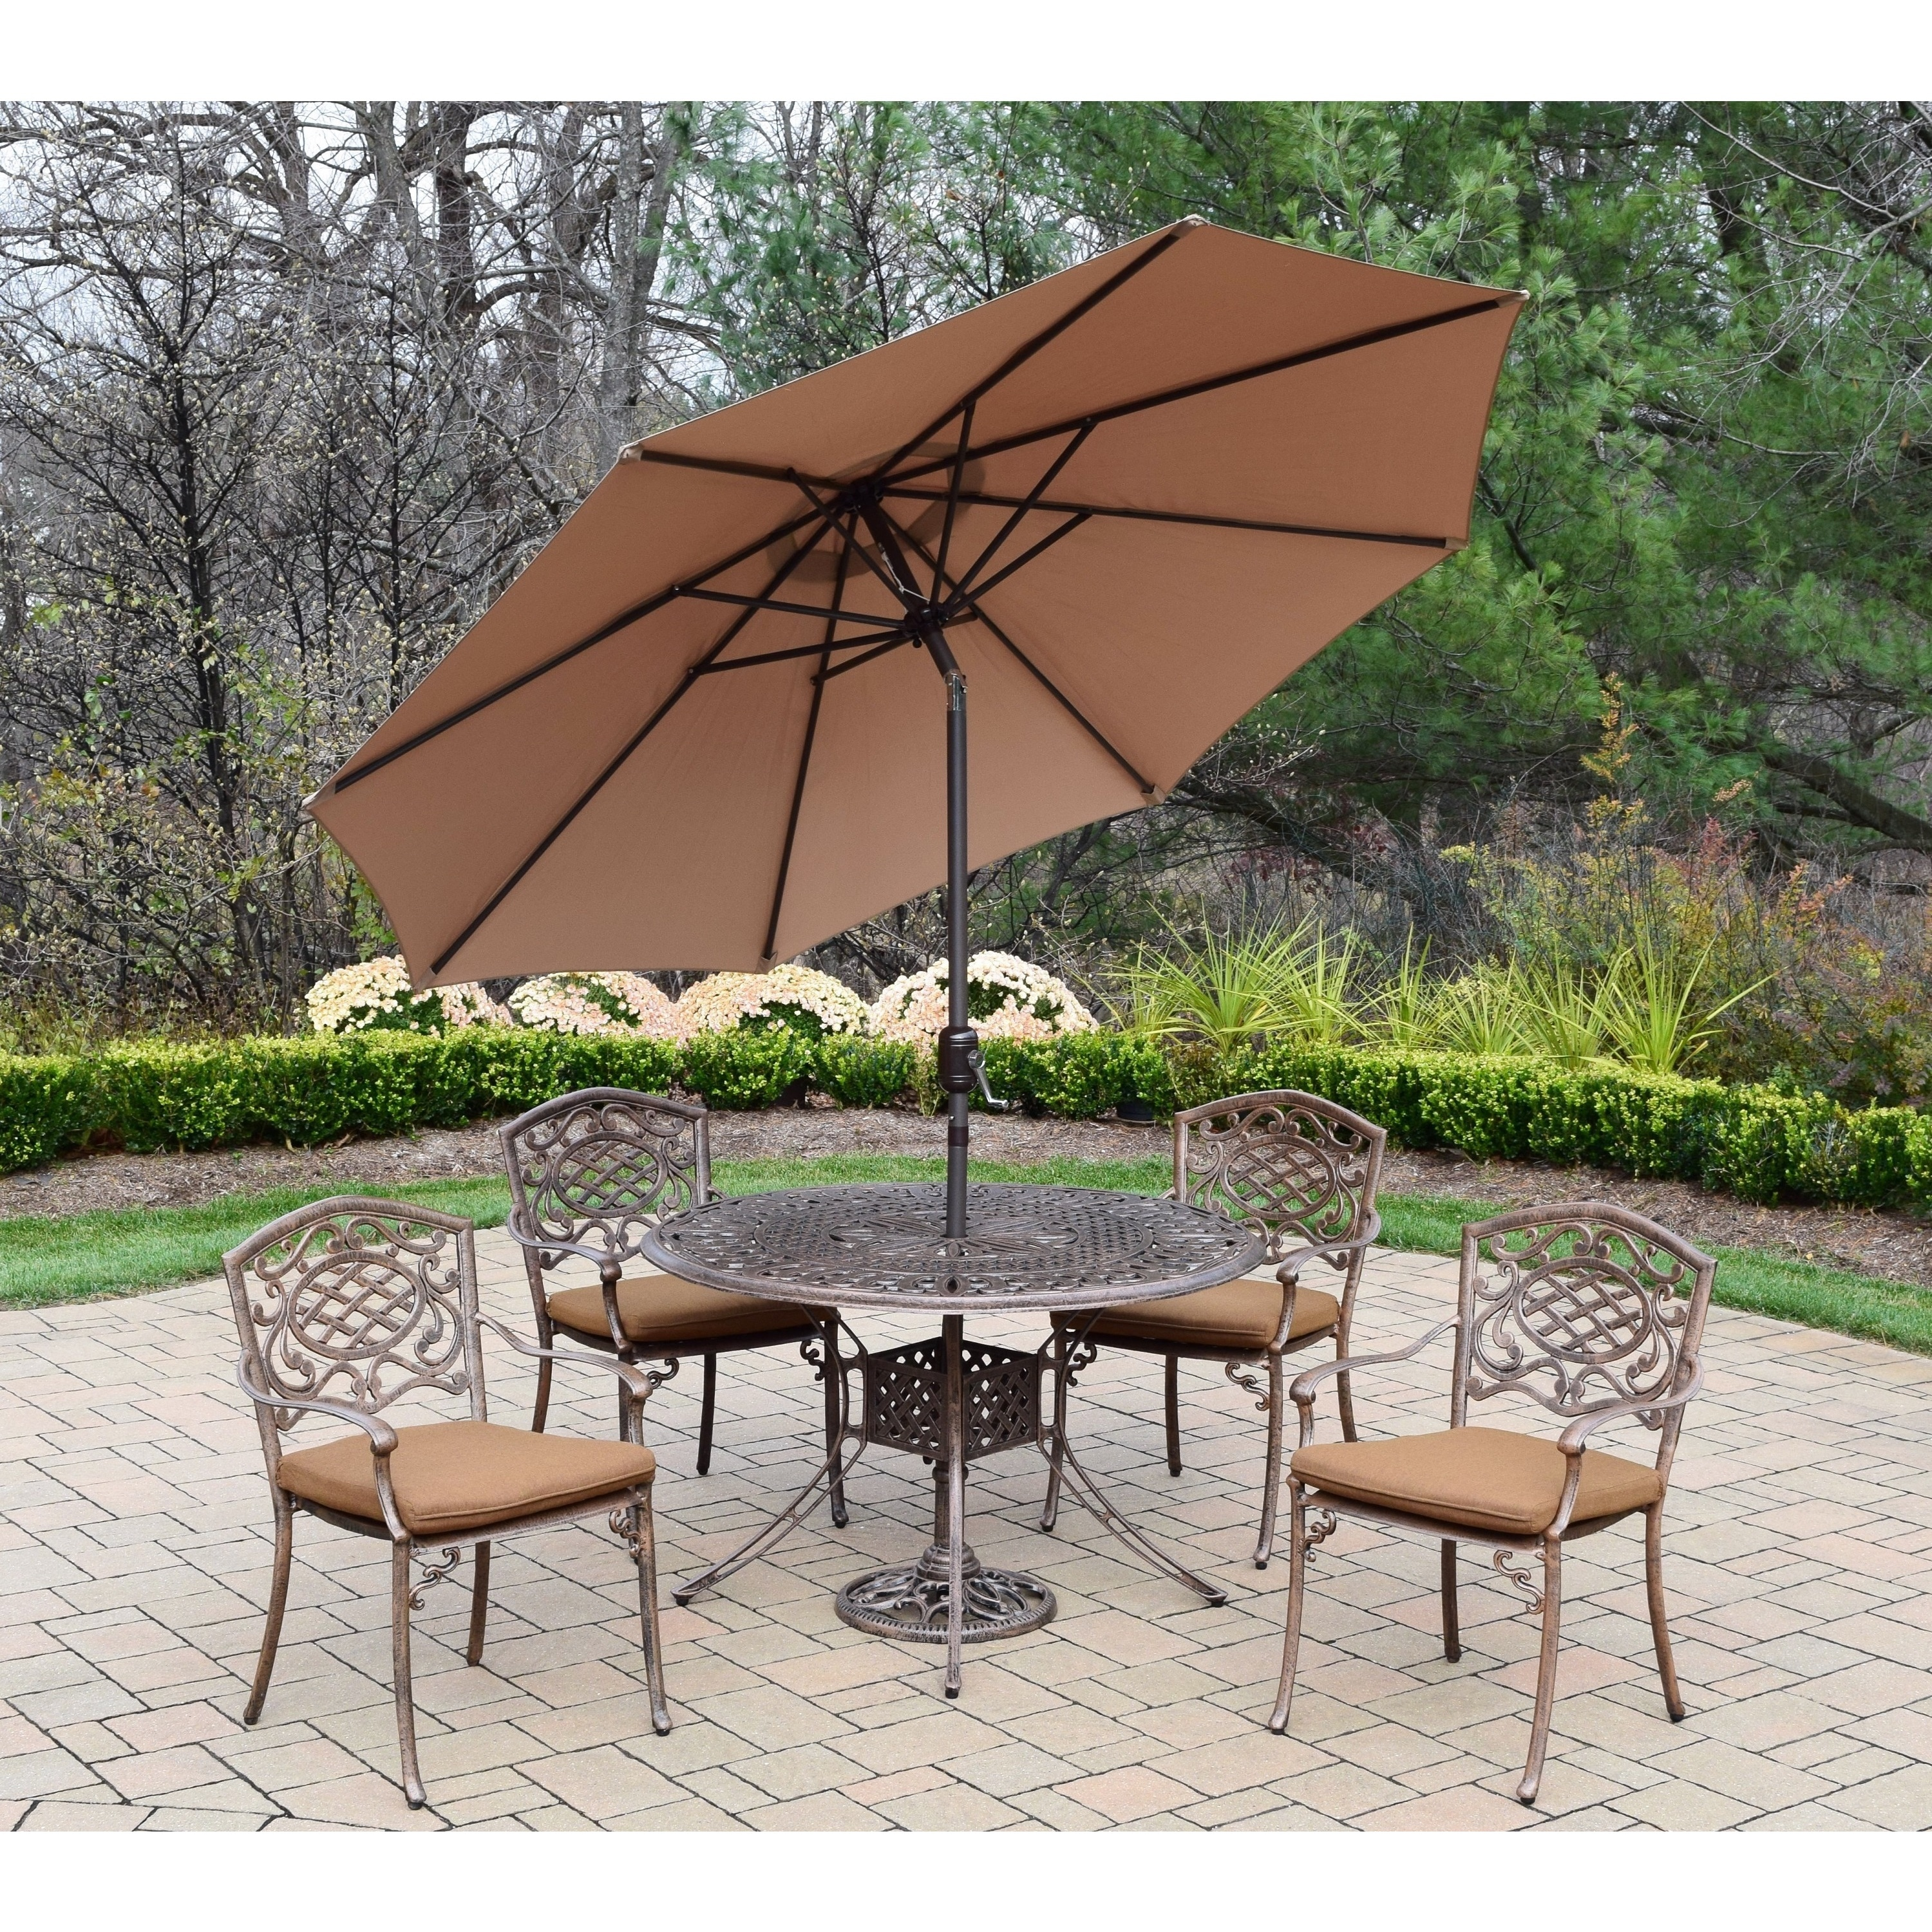 Sunbrella 7 Pc Patio Set With